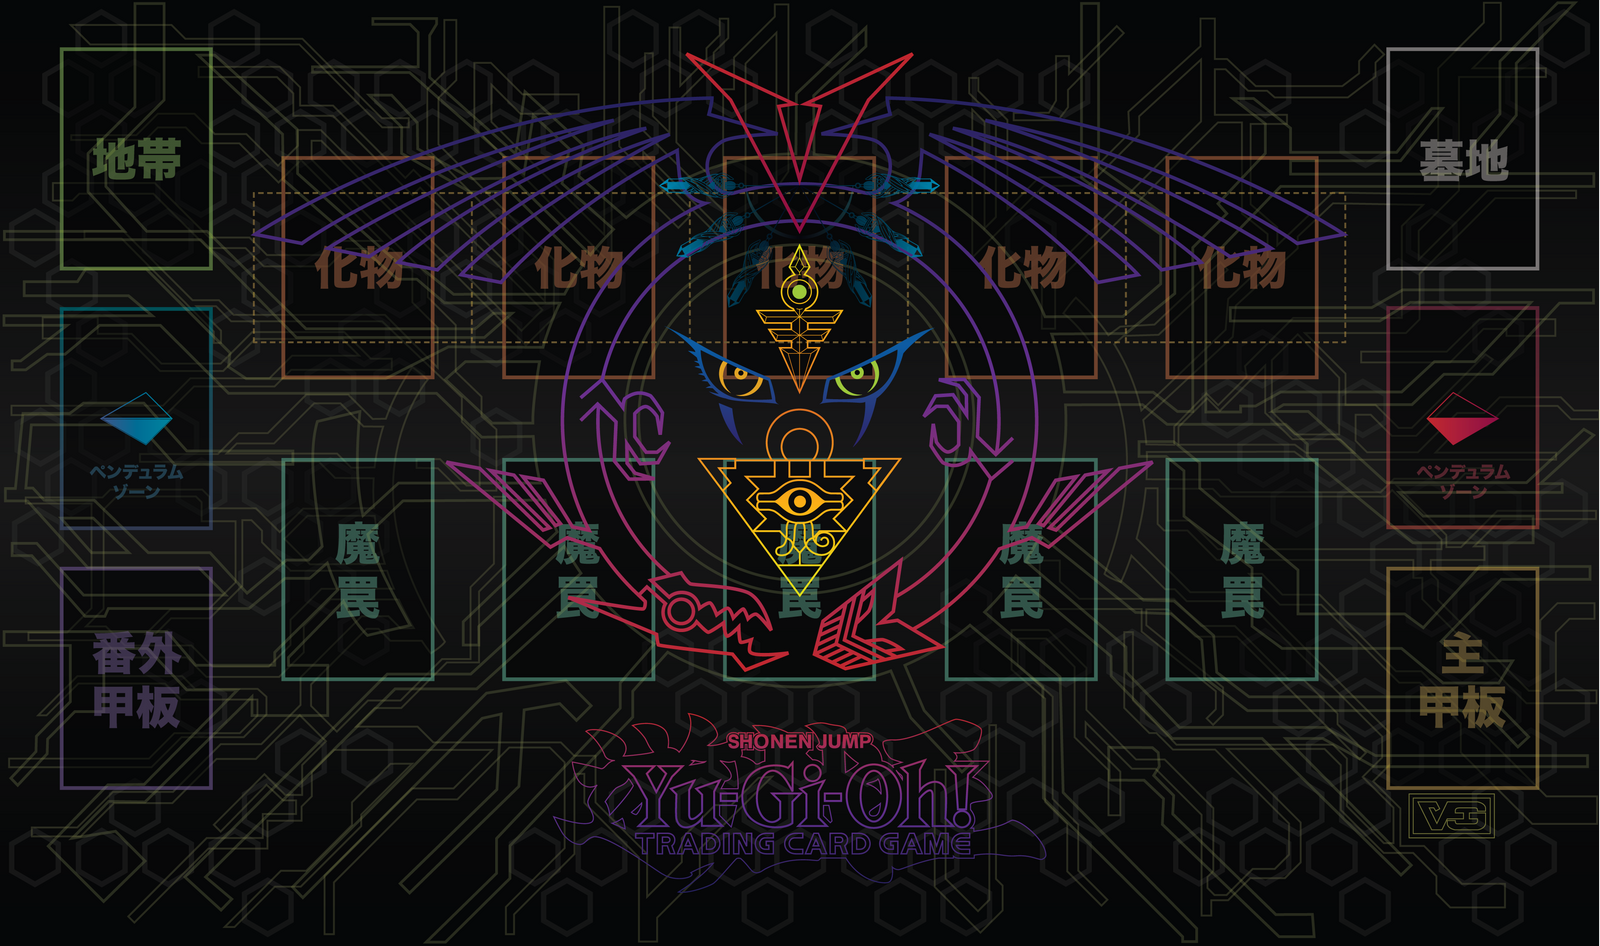 Yu gi oh playmat concept by teews666 on deviantart for Yugioh mat template